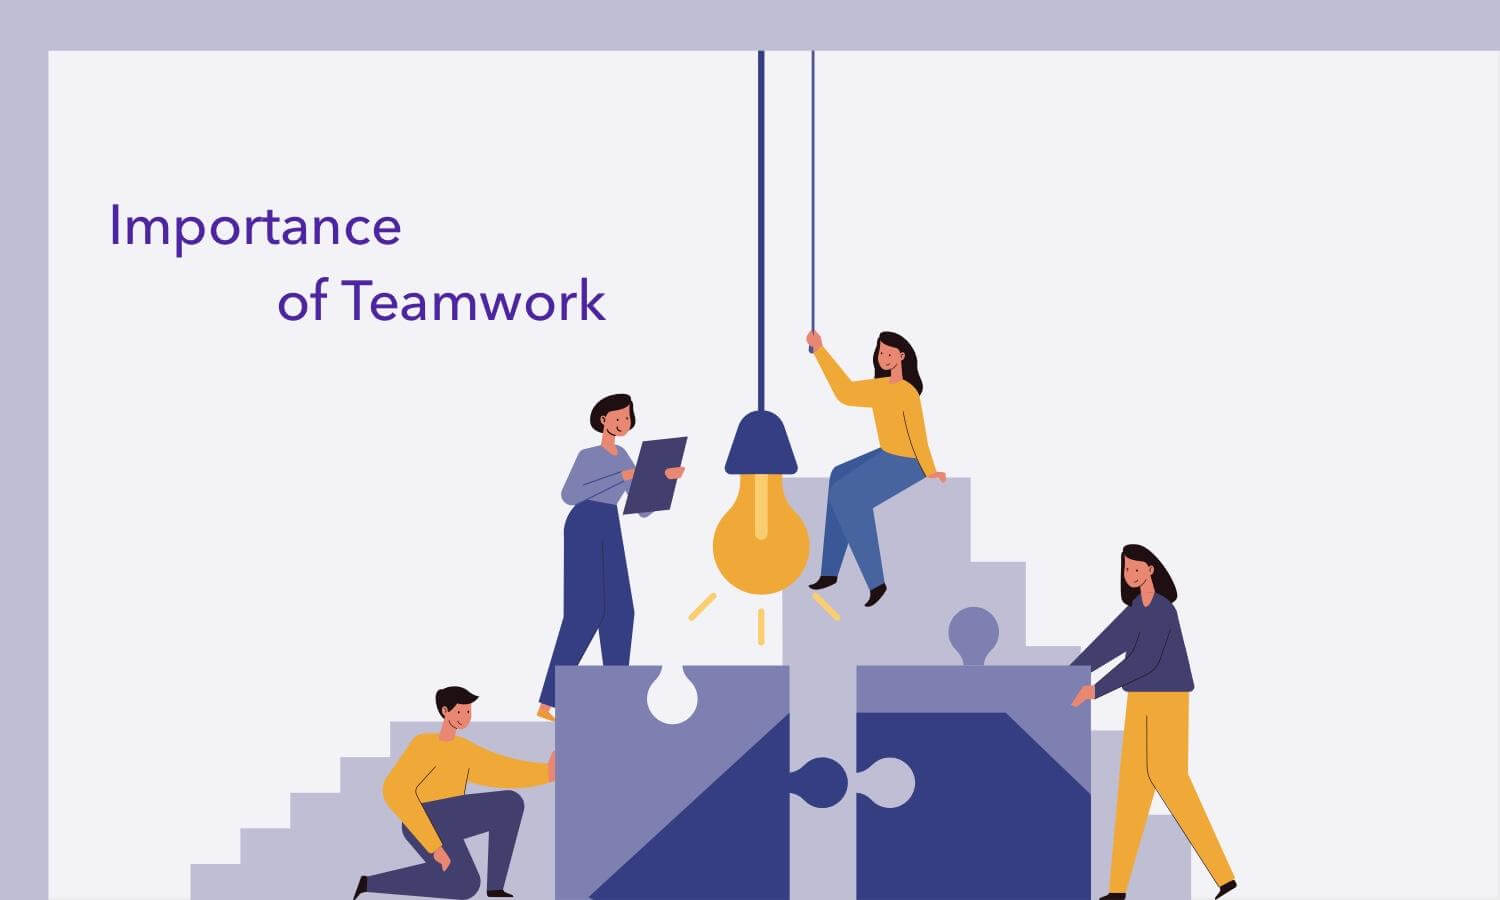 Importance of Teamwork: Key Benefits for Product Teams